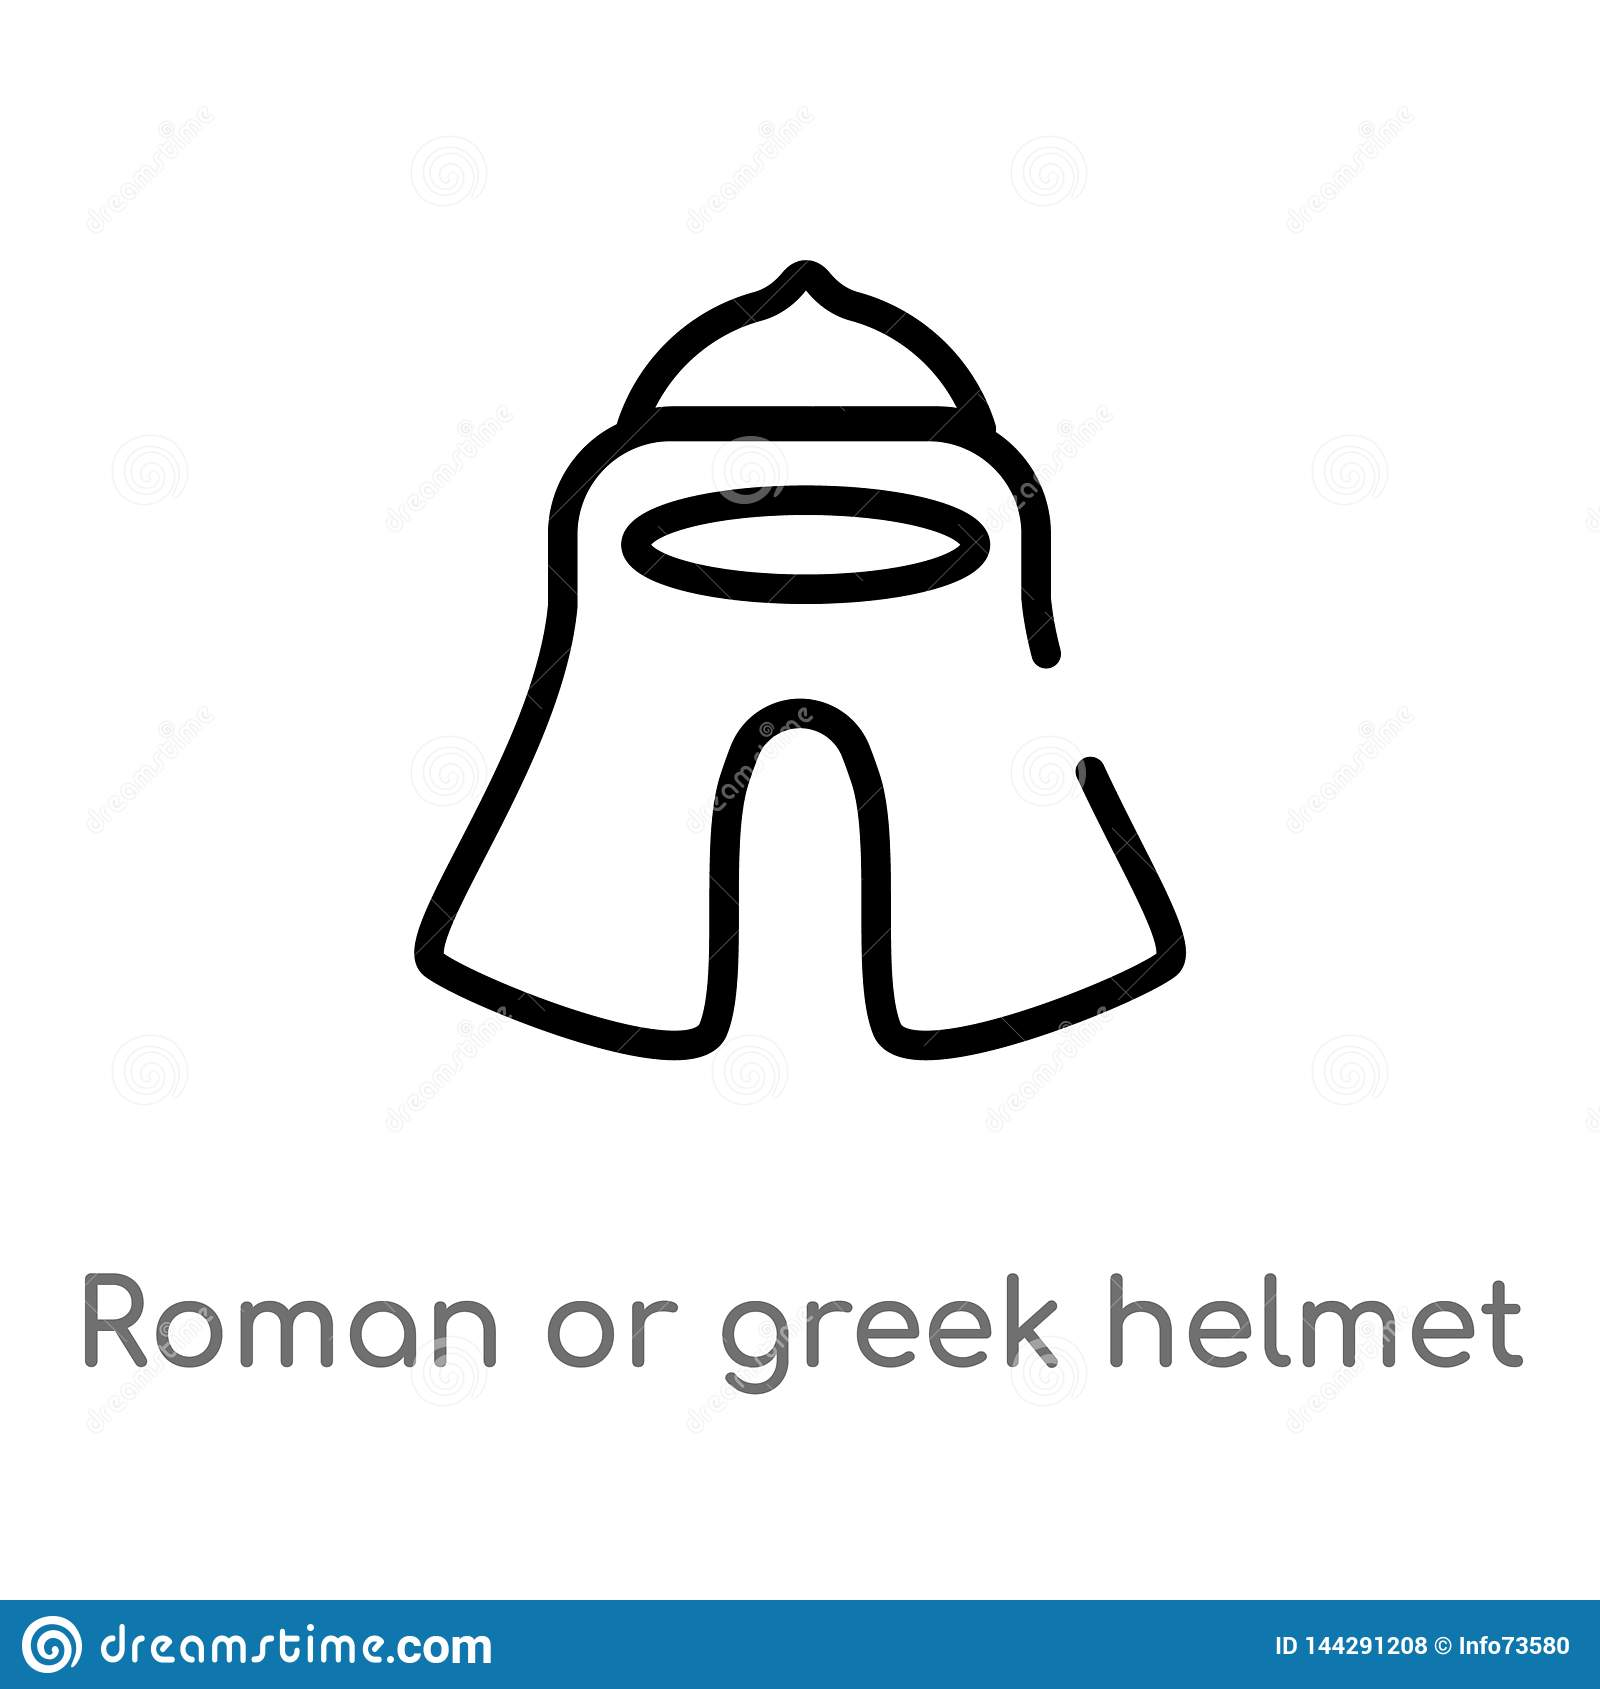 Outline Roman Or Greek Helmet Vector Icon  Isolated Black Simple